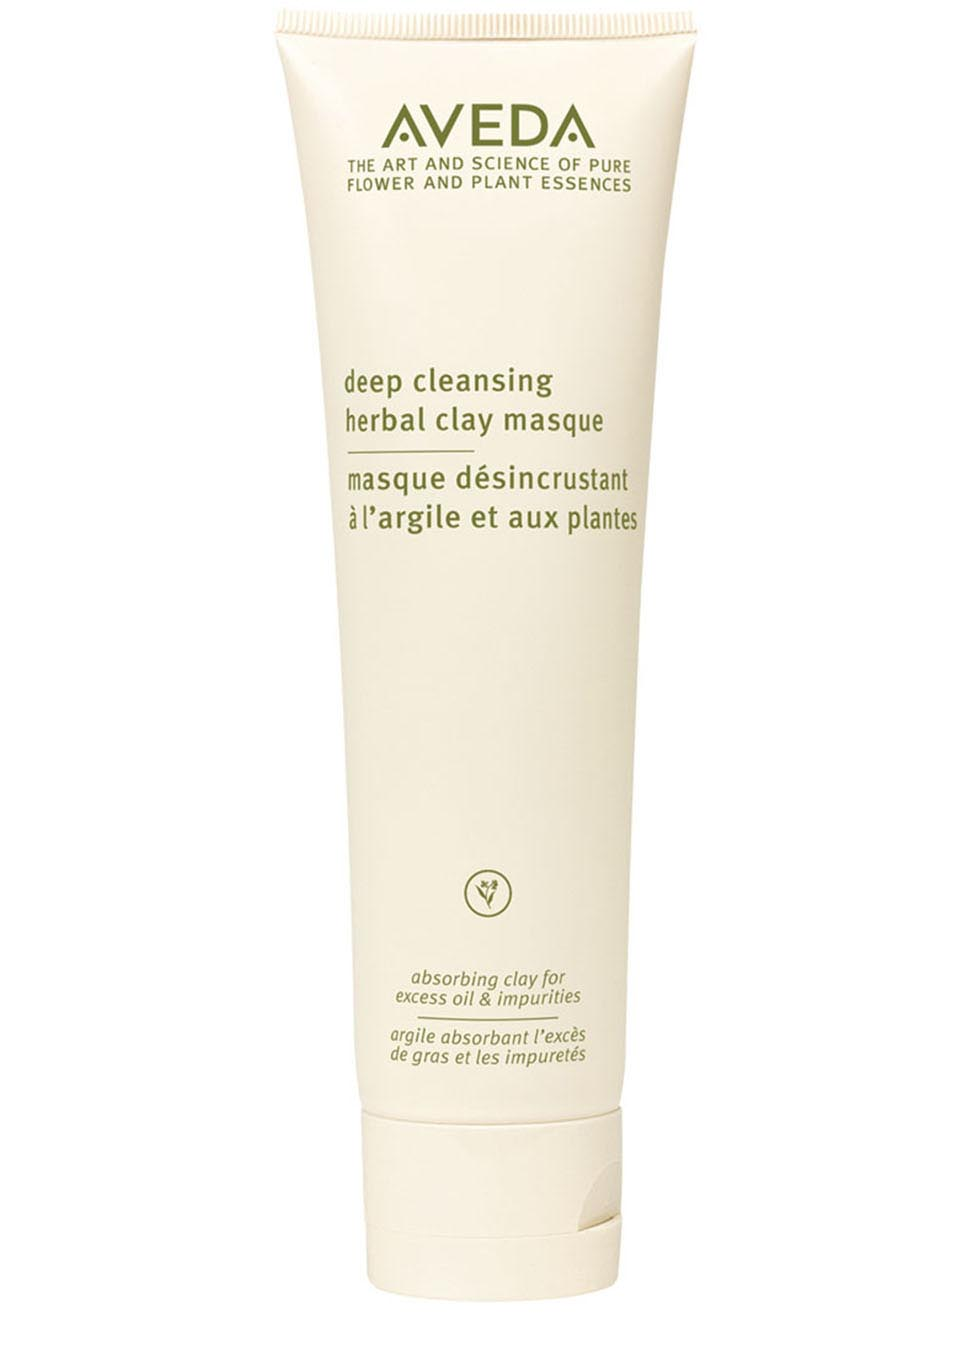 Deep Cleansing Herbal Clay Masque 125g